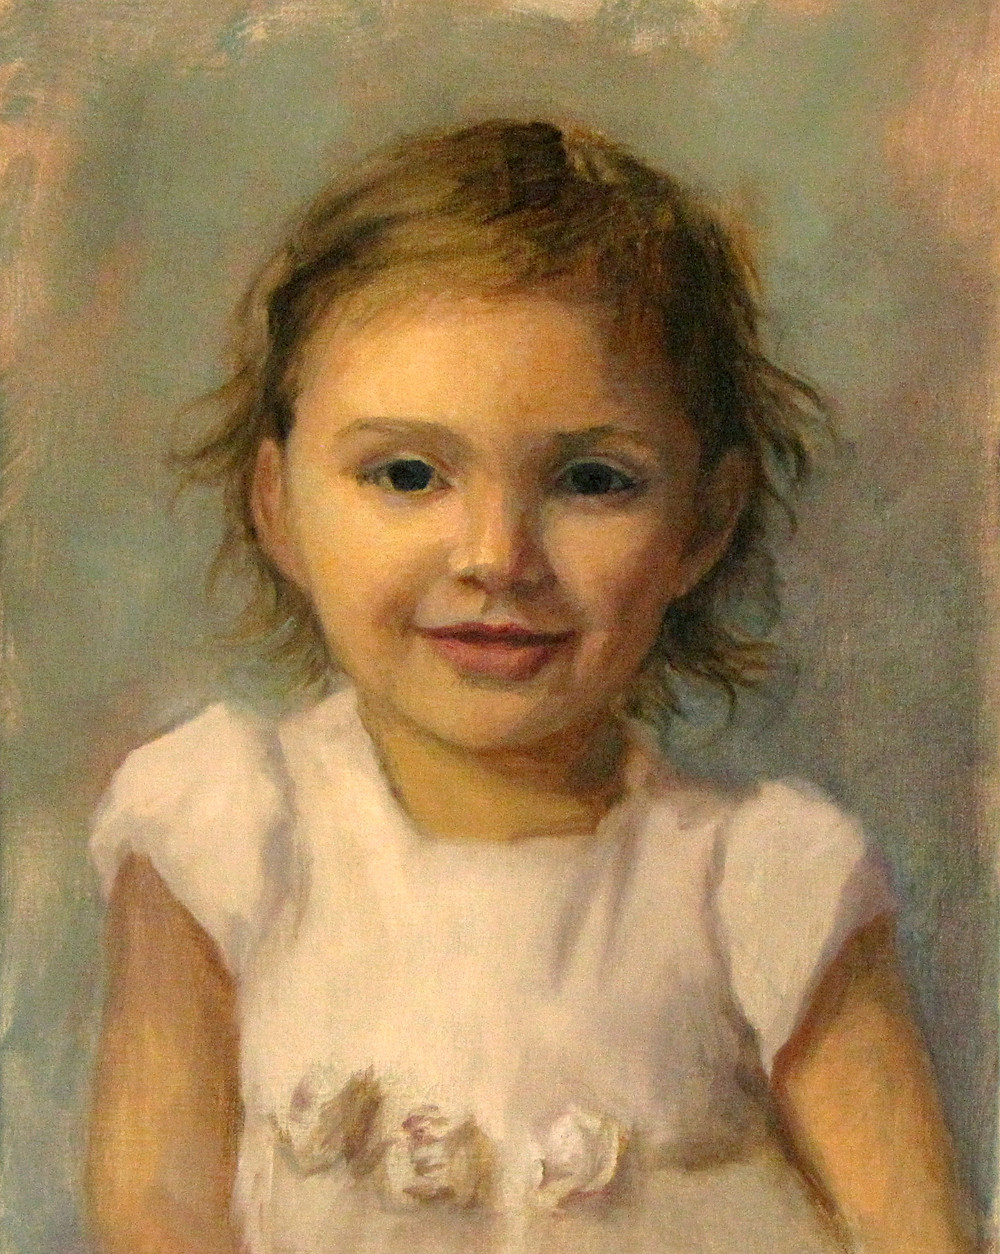 childportrai-Wagner.jpg